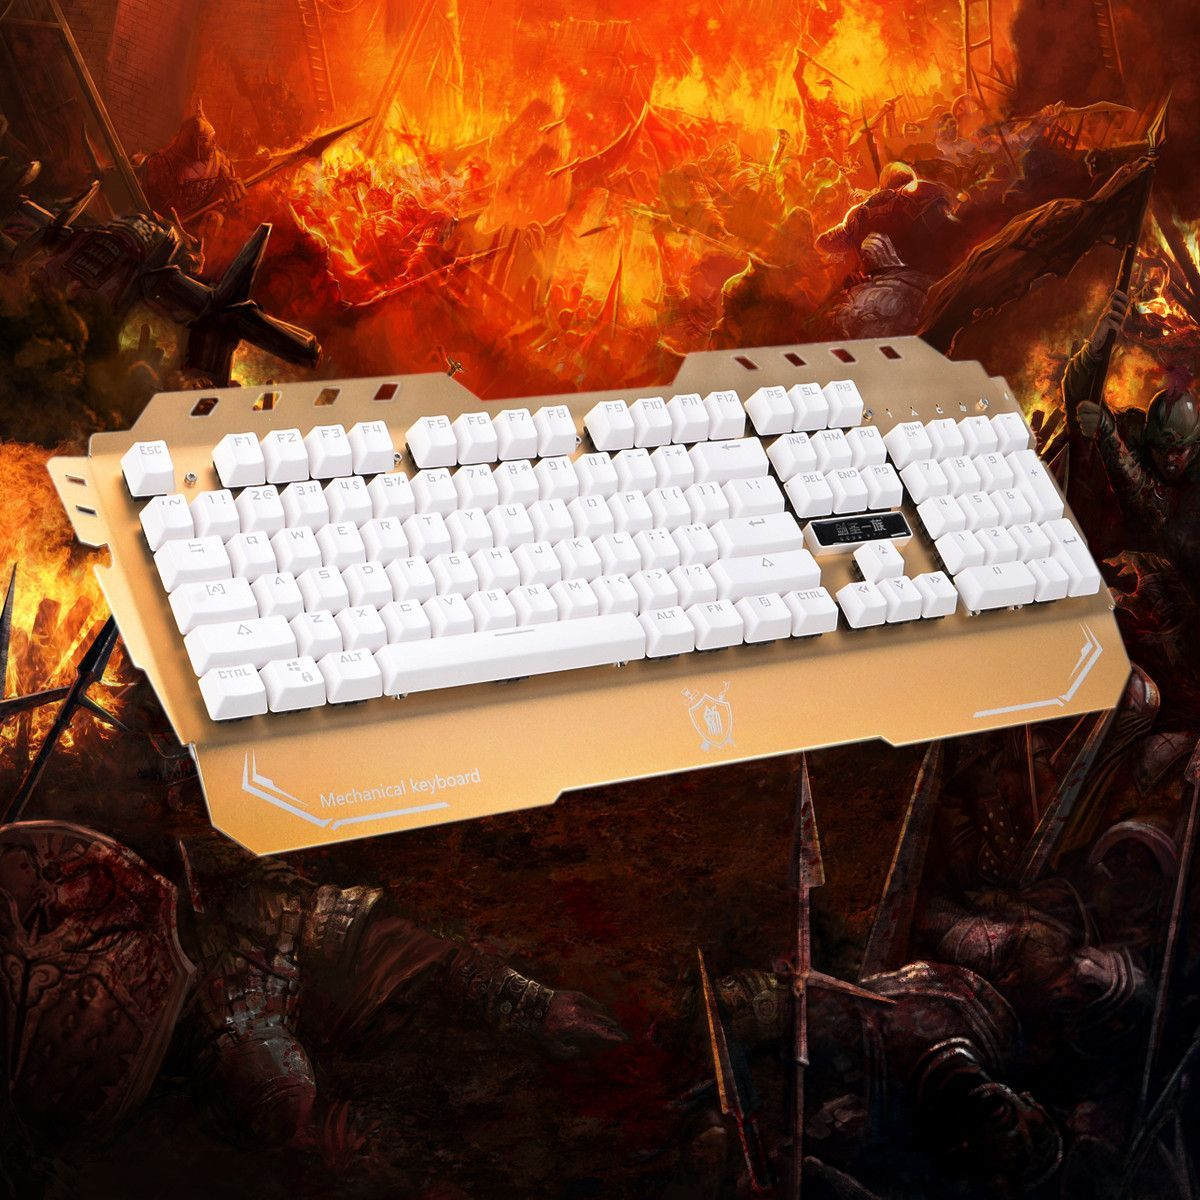 Jianshengyizu 104-key USB Wired Mechanical Gaming Keyboard - Champaign Golden White